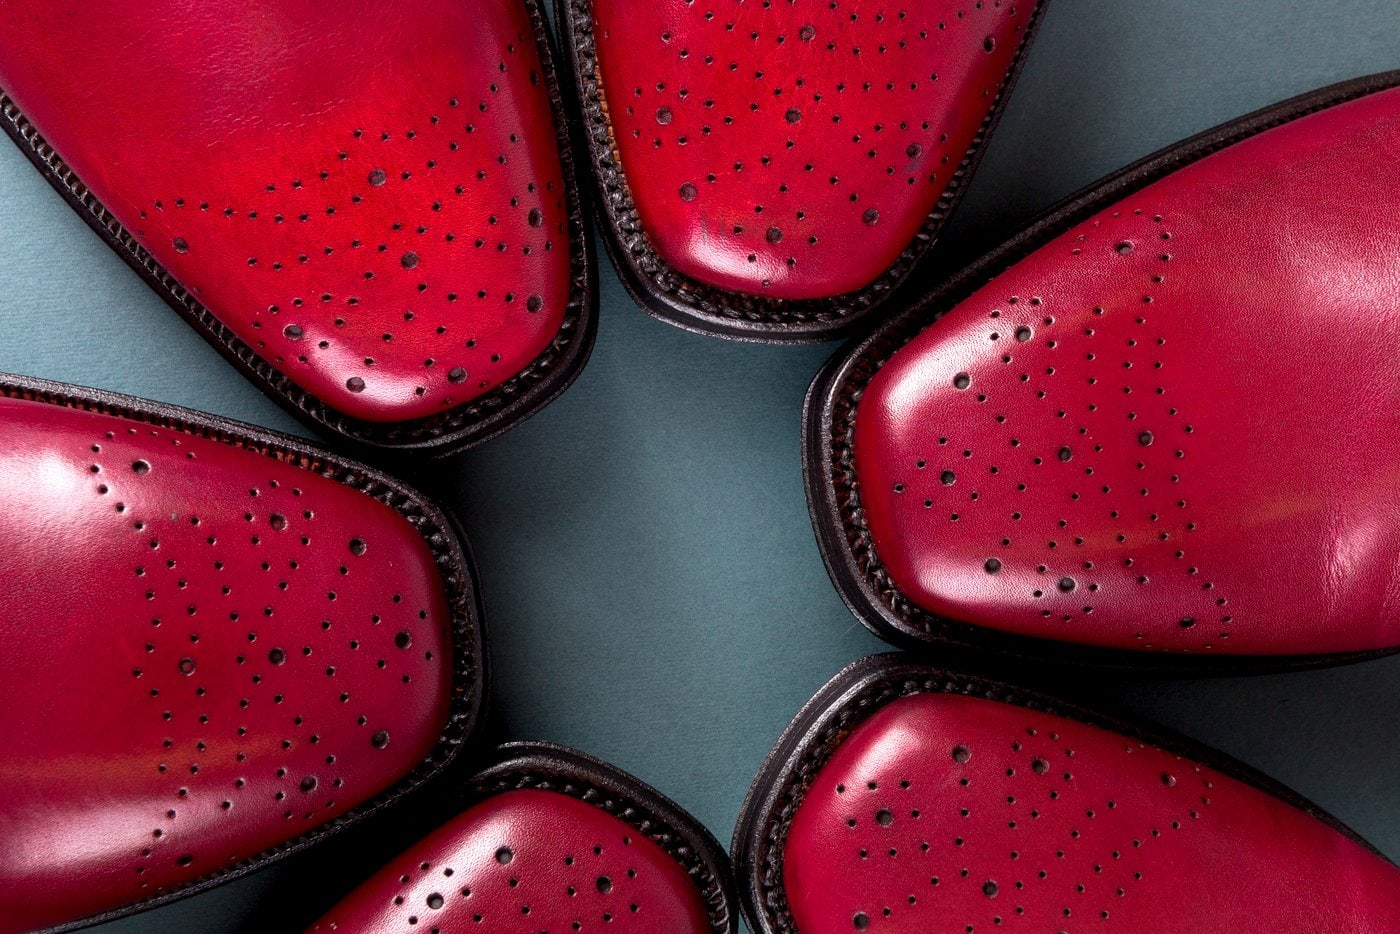 Many pairs of red leather Oxford shoes